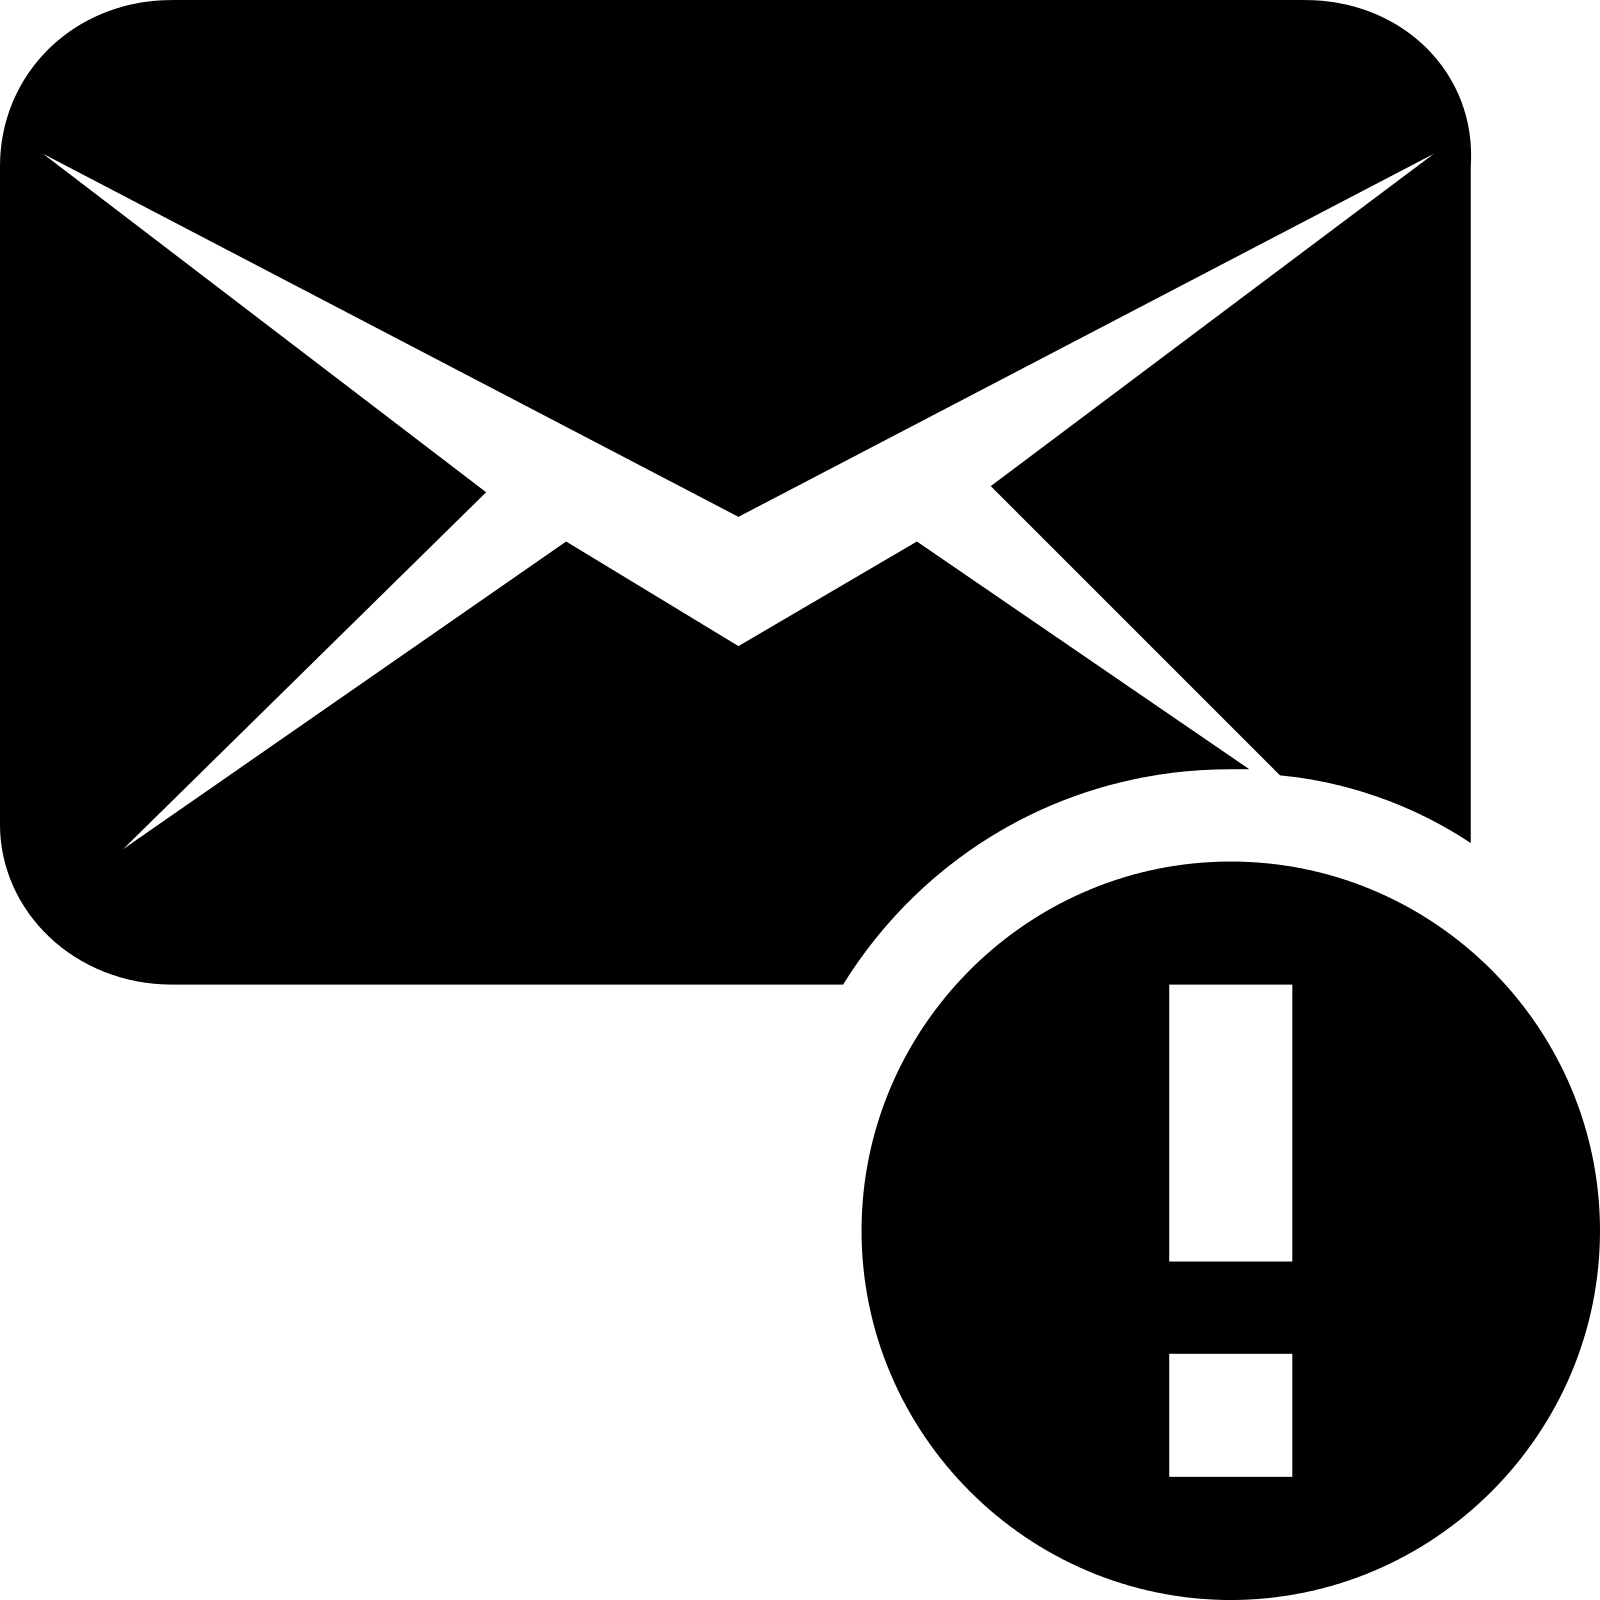 Message clipart urgent Icon Message Download SVG Free